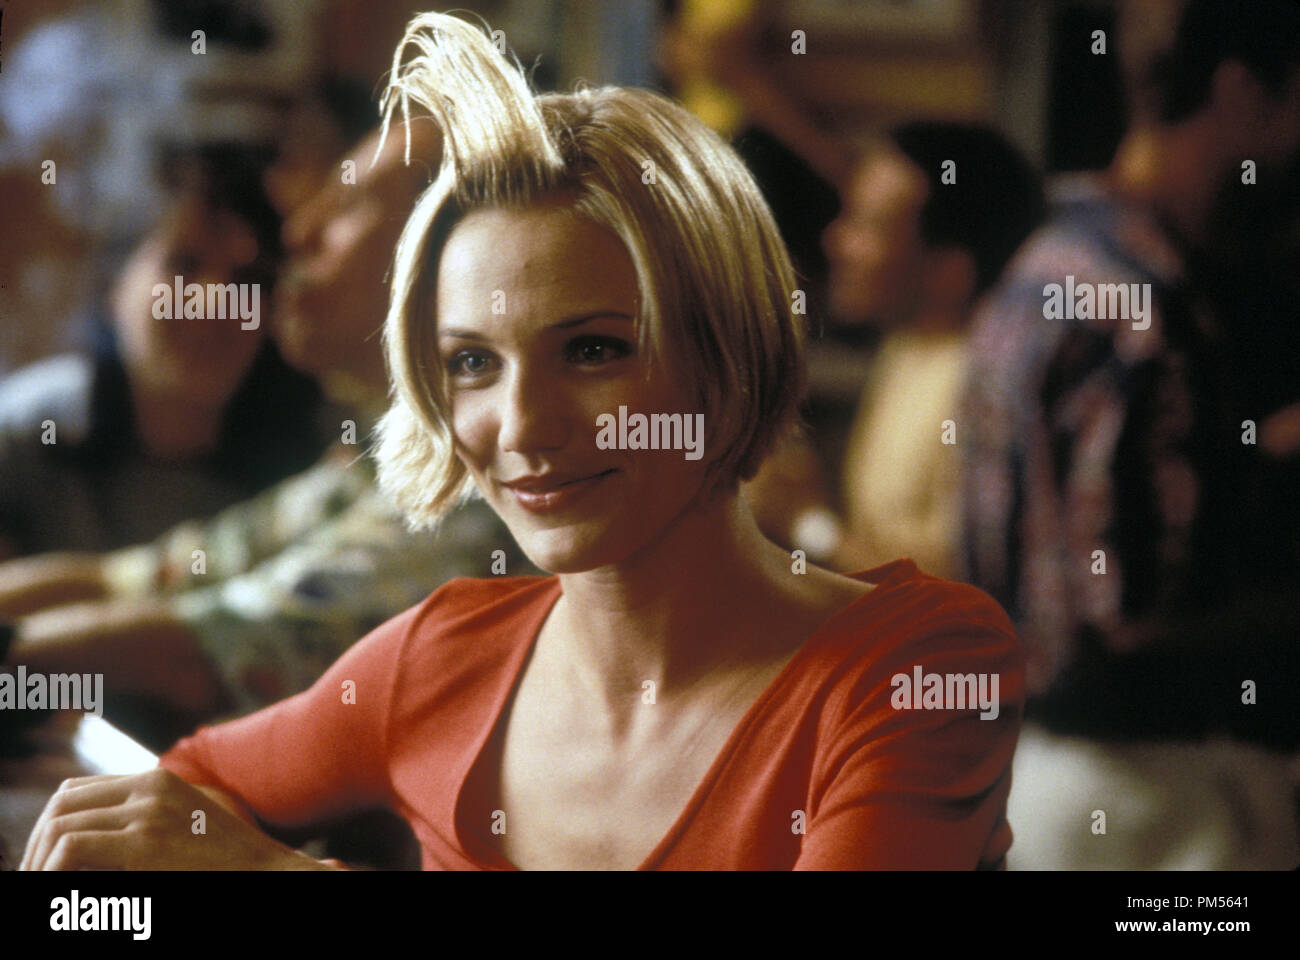 'There's Something About Mary' 1998 Cameron Diaz - Stock Image